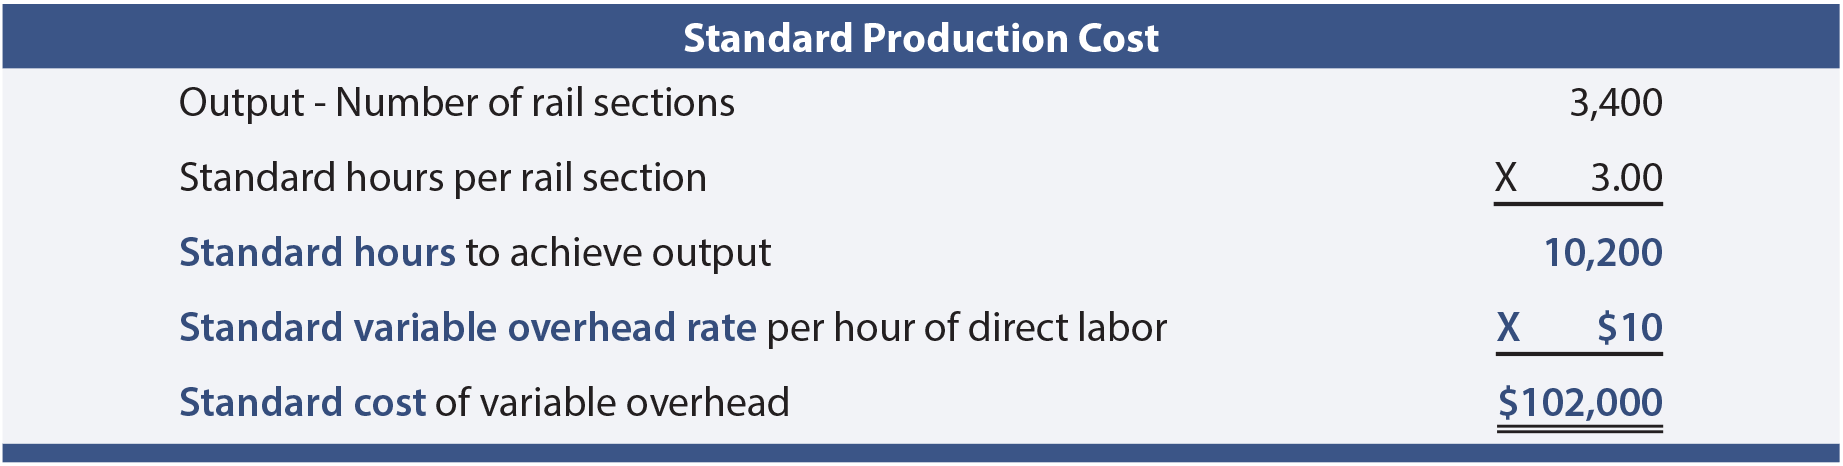 Standard Production Cost